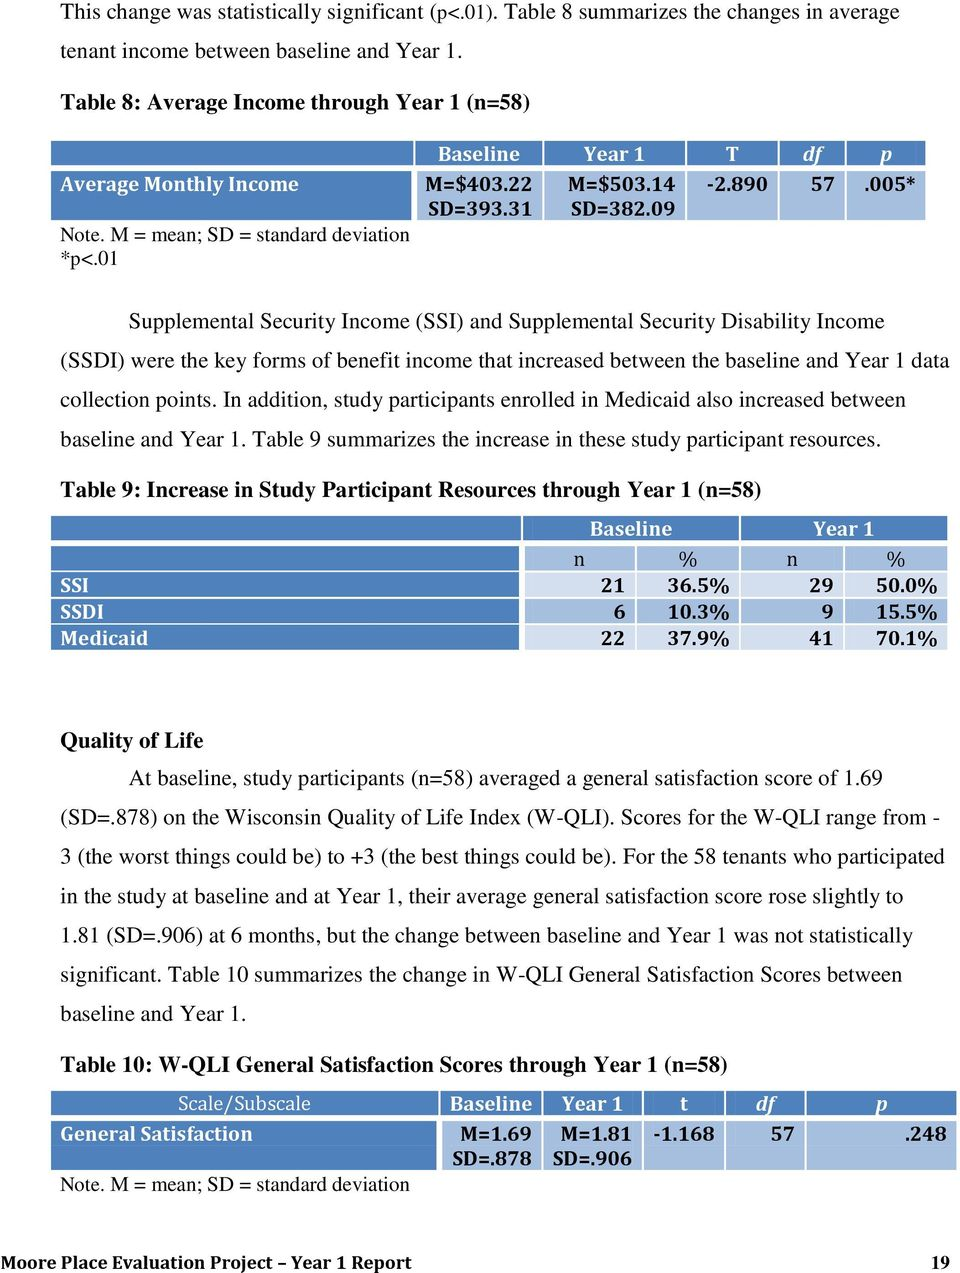 09 Supplemental Security Income (SSI) and Supplemental Security Disability Income (SSDI) were the key forms of benefit income that increased between the baseline and Year 1 data collection points.